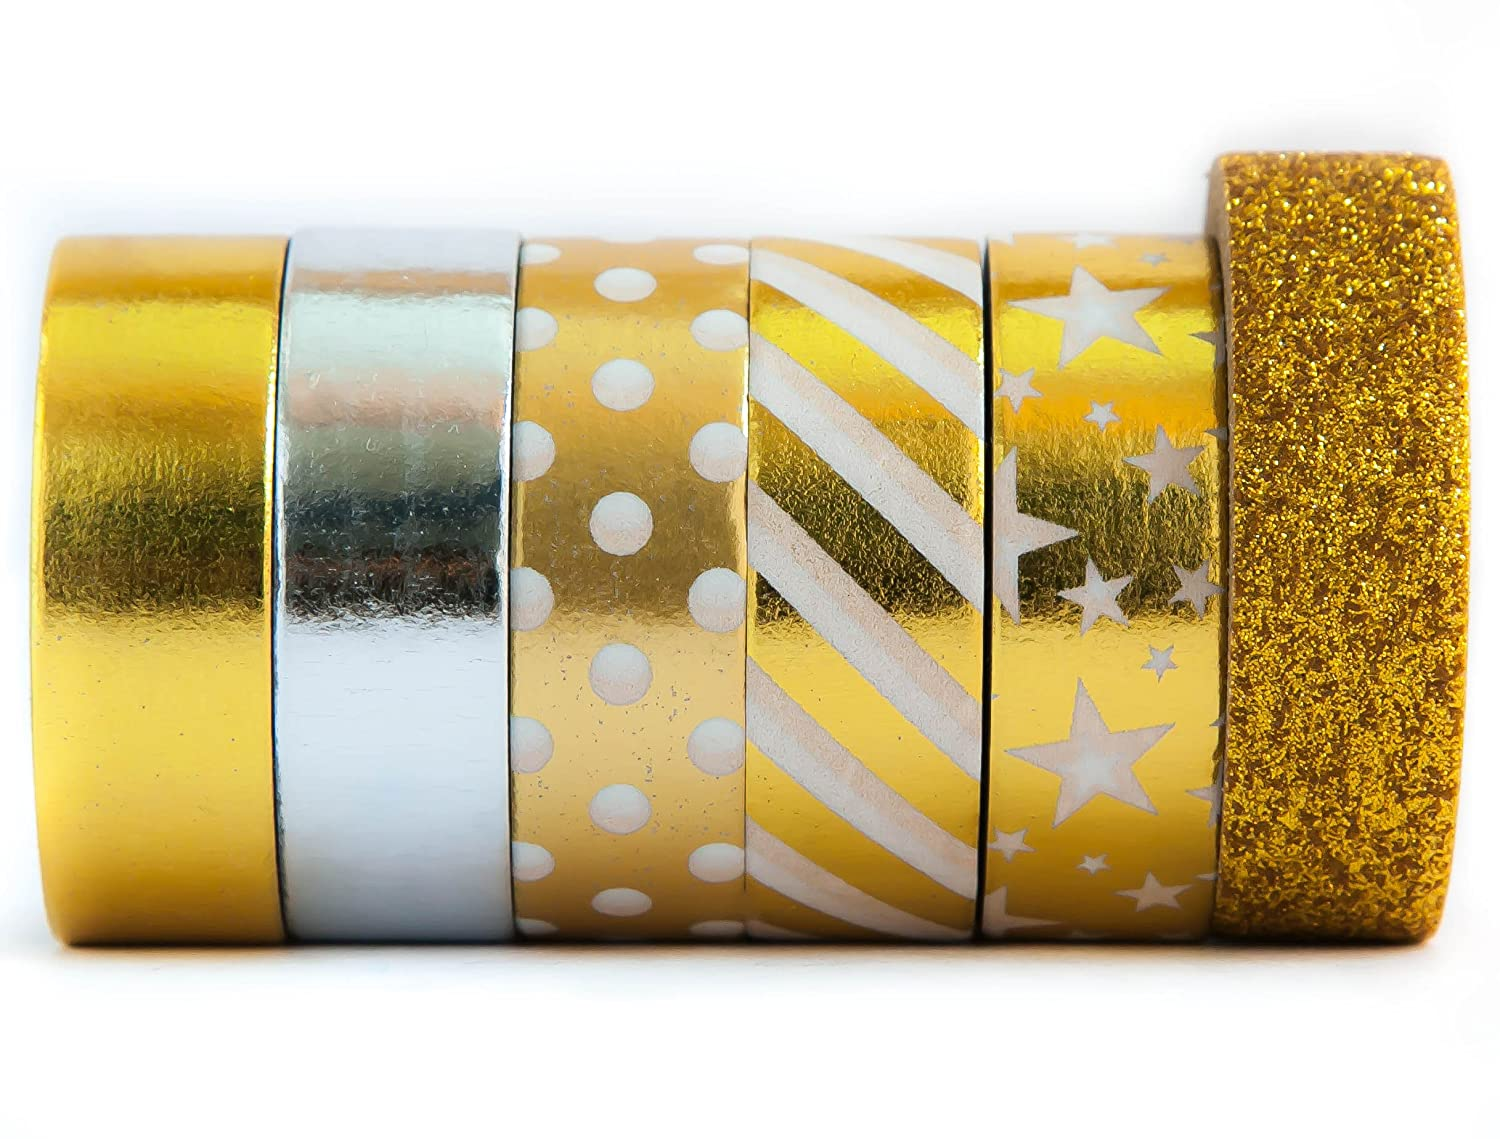 Glitter Gold Washi Tape Colored Decorative Masking Paper Tape – Stripe, Star, Solid, Polka Dot, Silver, Gold, Yellow - Premium Quality Repositionable & Writable - 6 Rolls (15mm x 10m) - Gold & Silver - by Washi.Design (Glitter Gold) WDFGD610